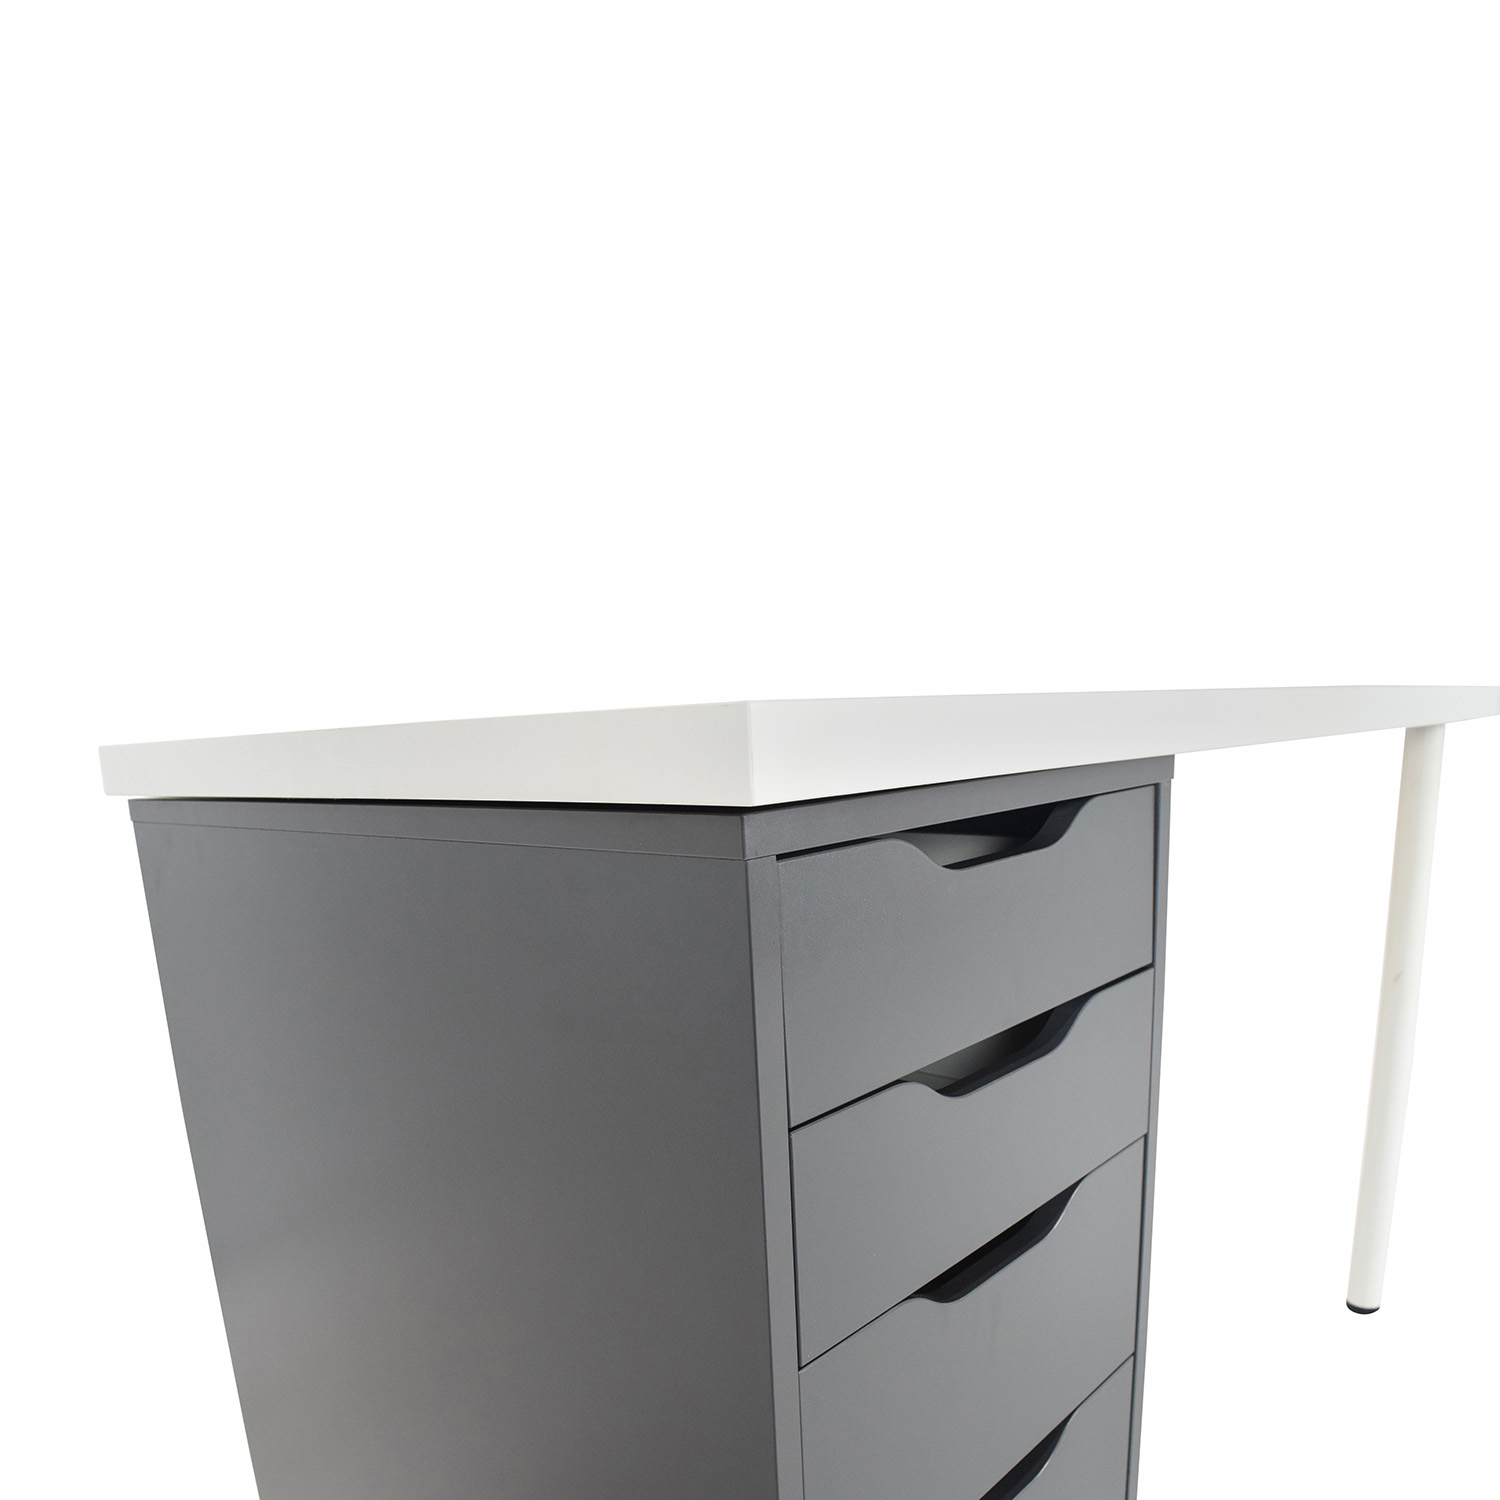 Online Shopping Study Table: IKEA Study Table / Tables